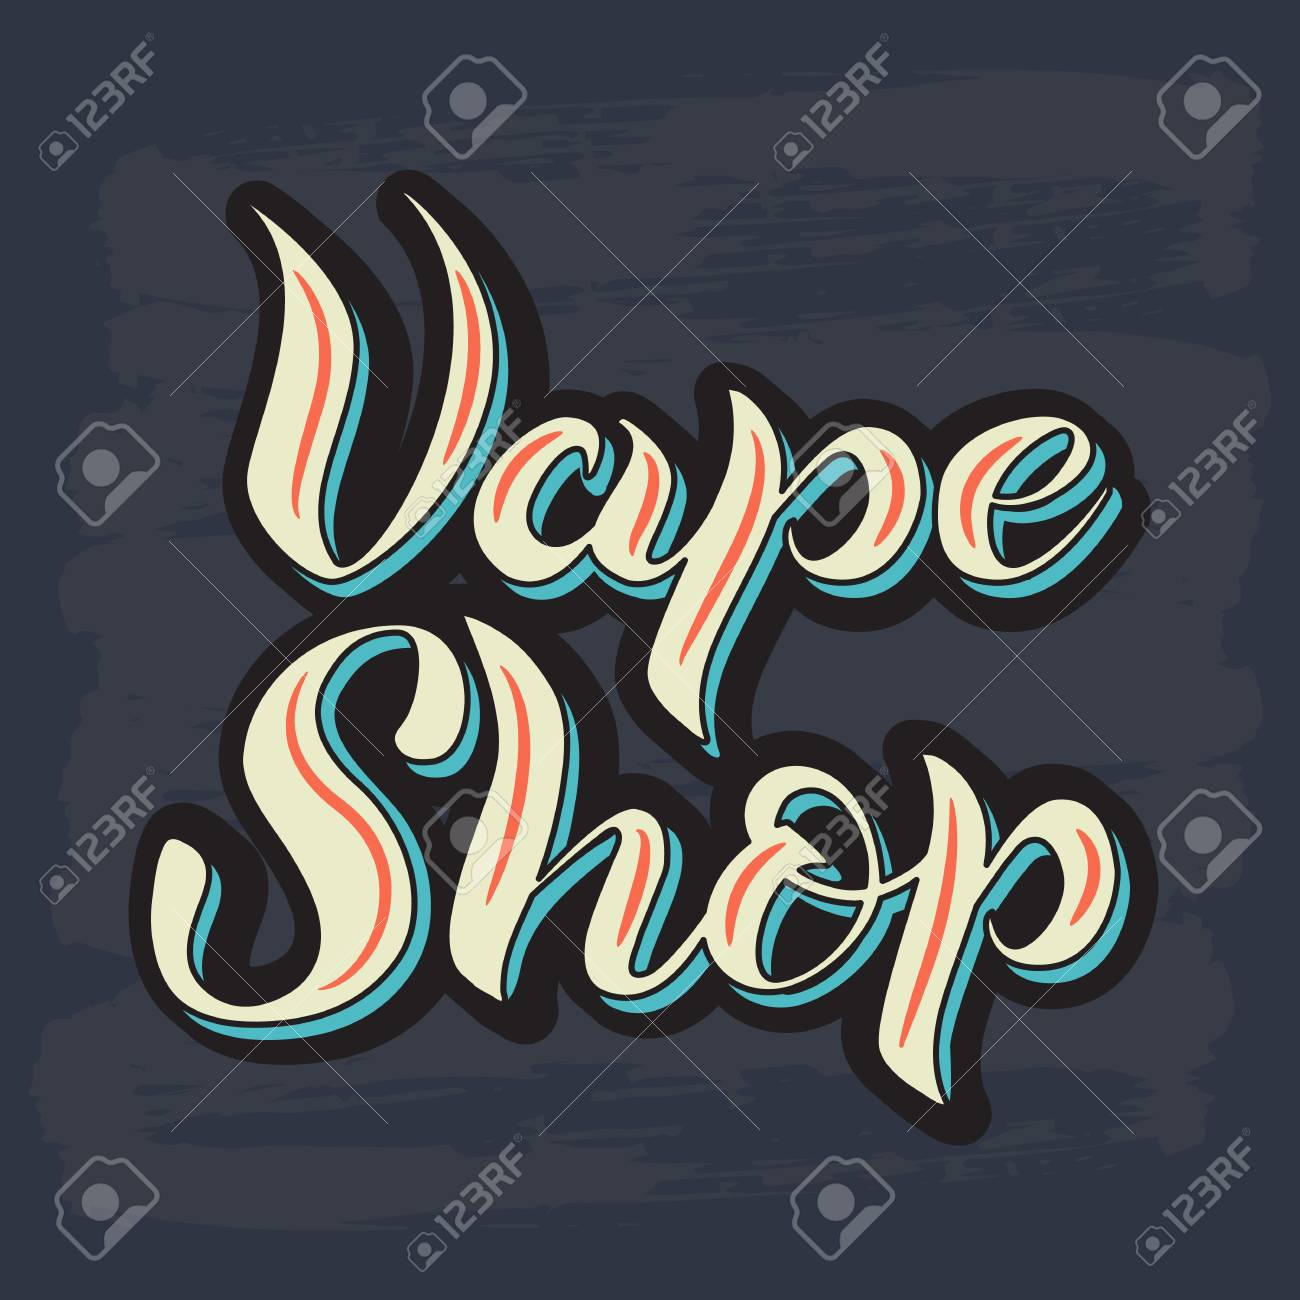 vector illustration with graphic elements and lettering vape